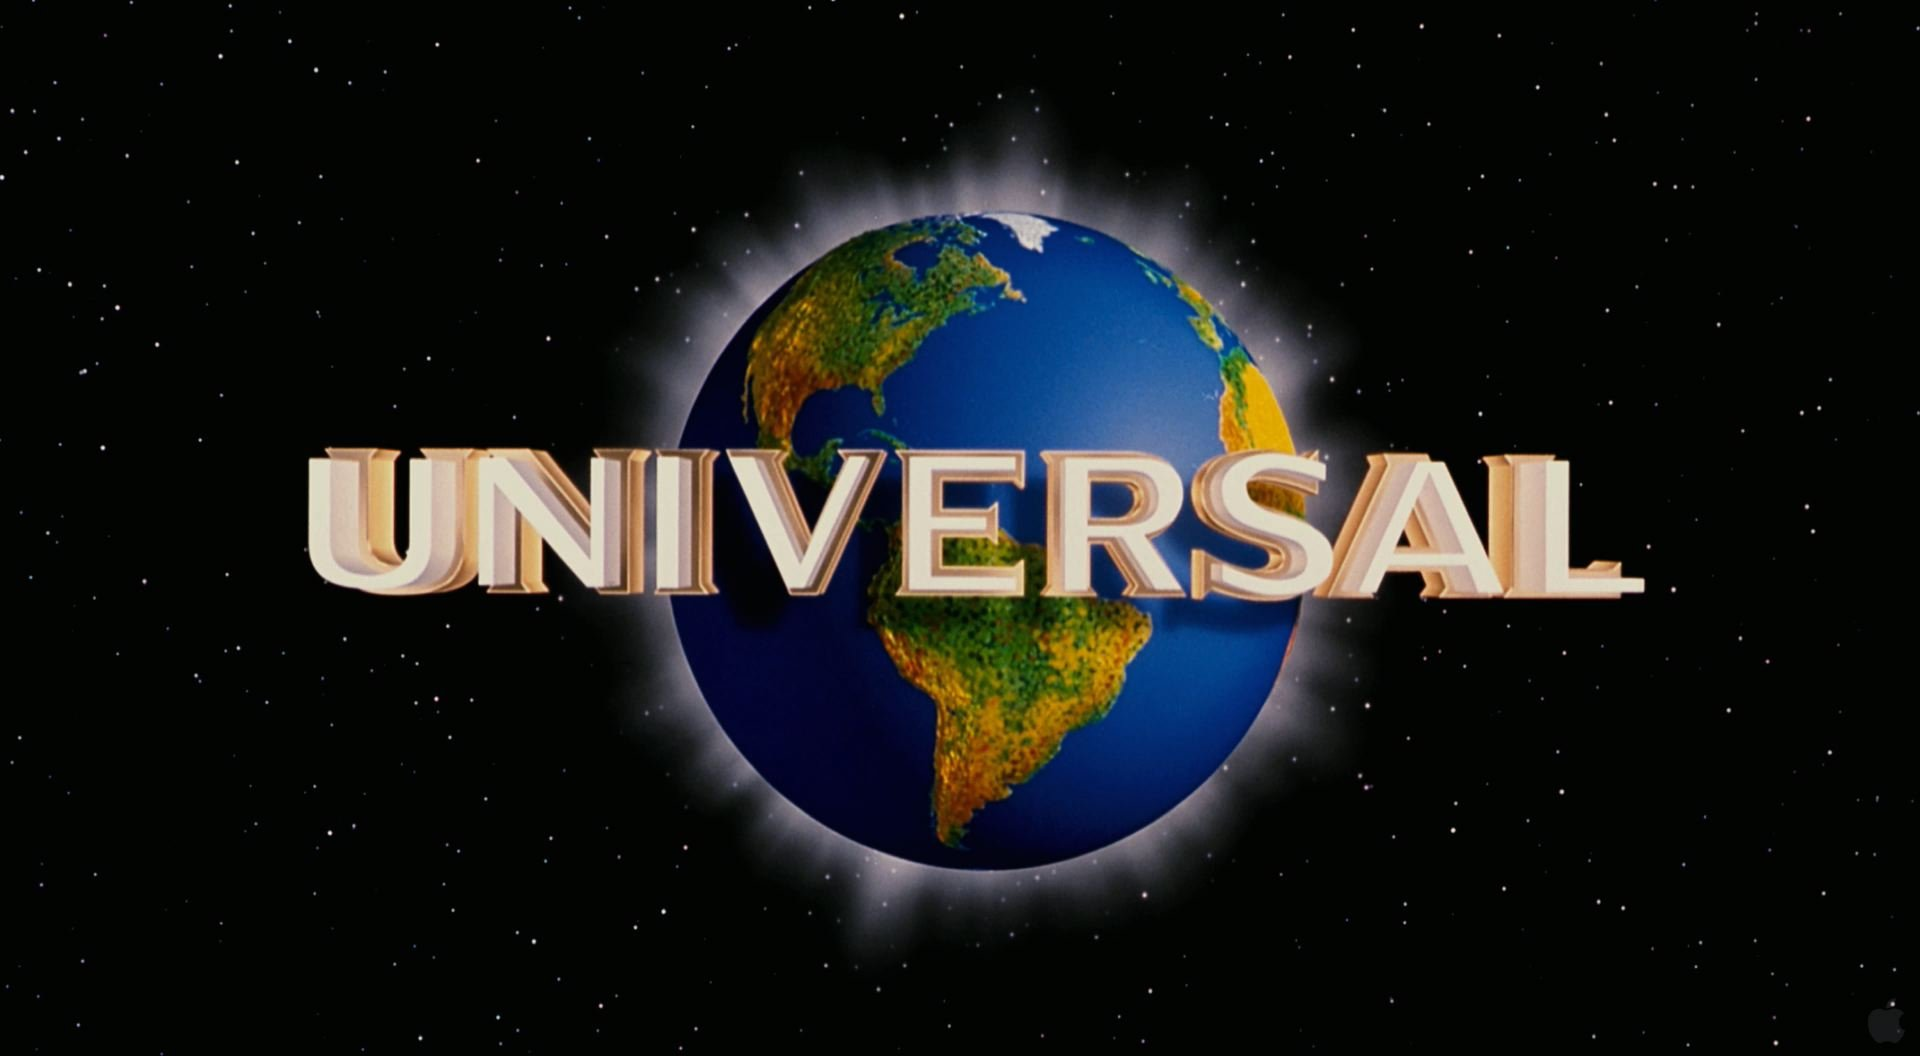 Universal Studios Logo wallpaper   Click picture for high resolution 1920x1056